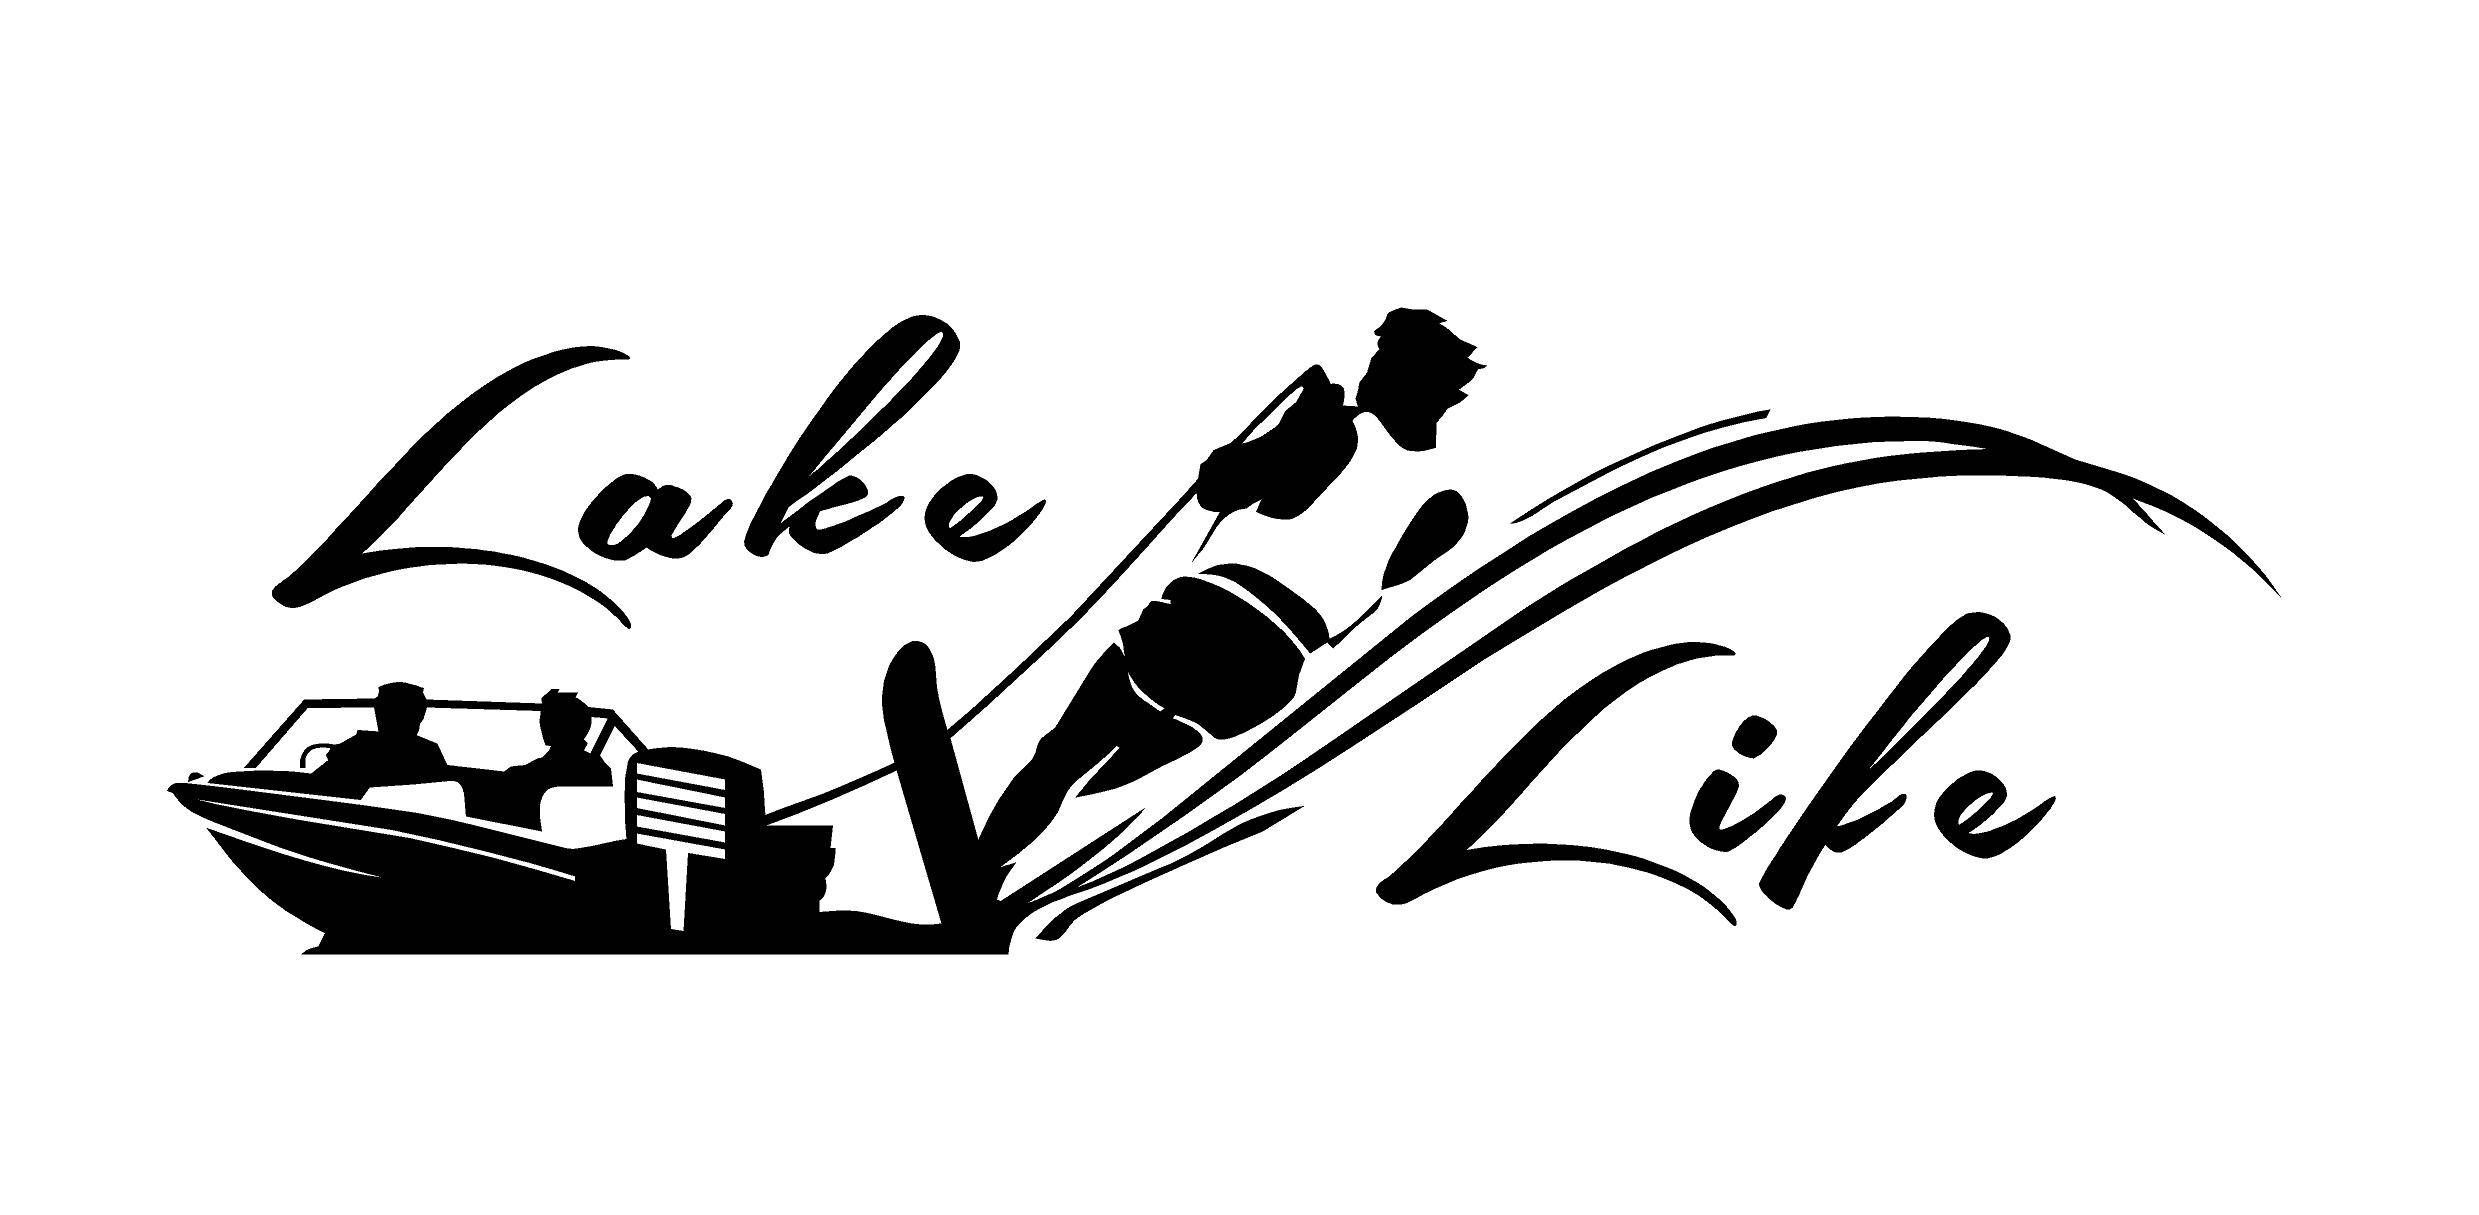 Lake Life Decal Water Skier decal Boat Decal Vinyl Decal